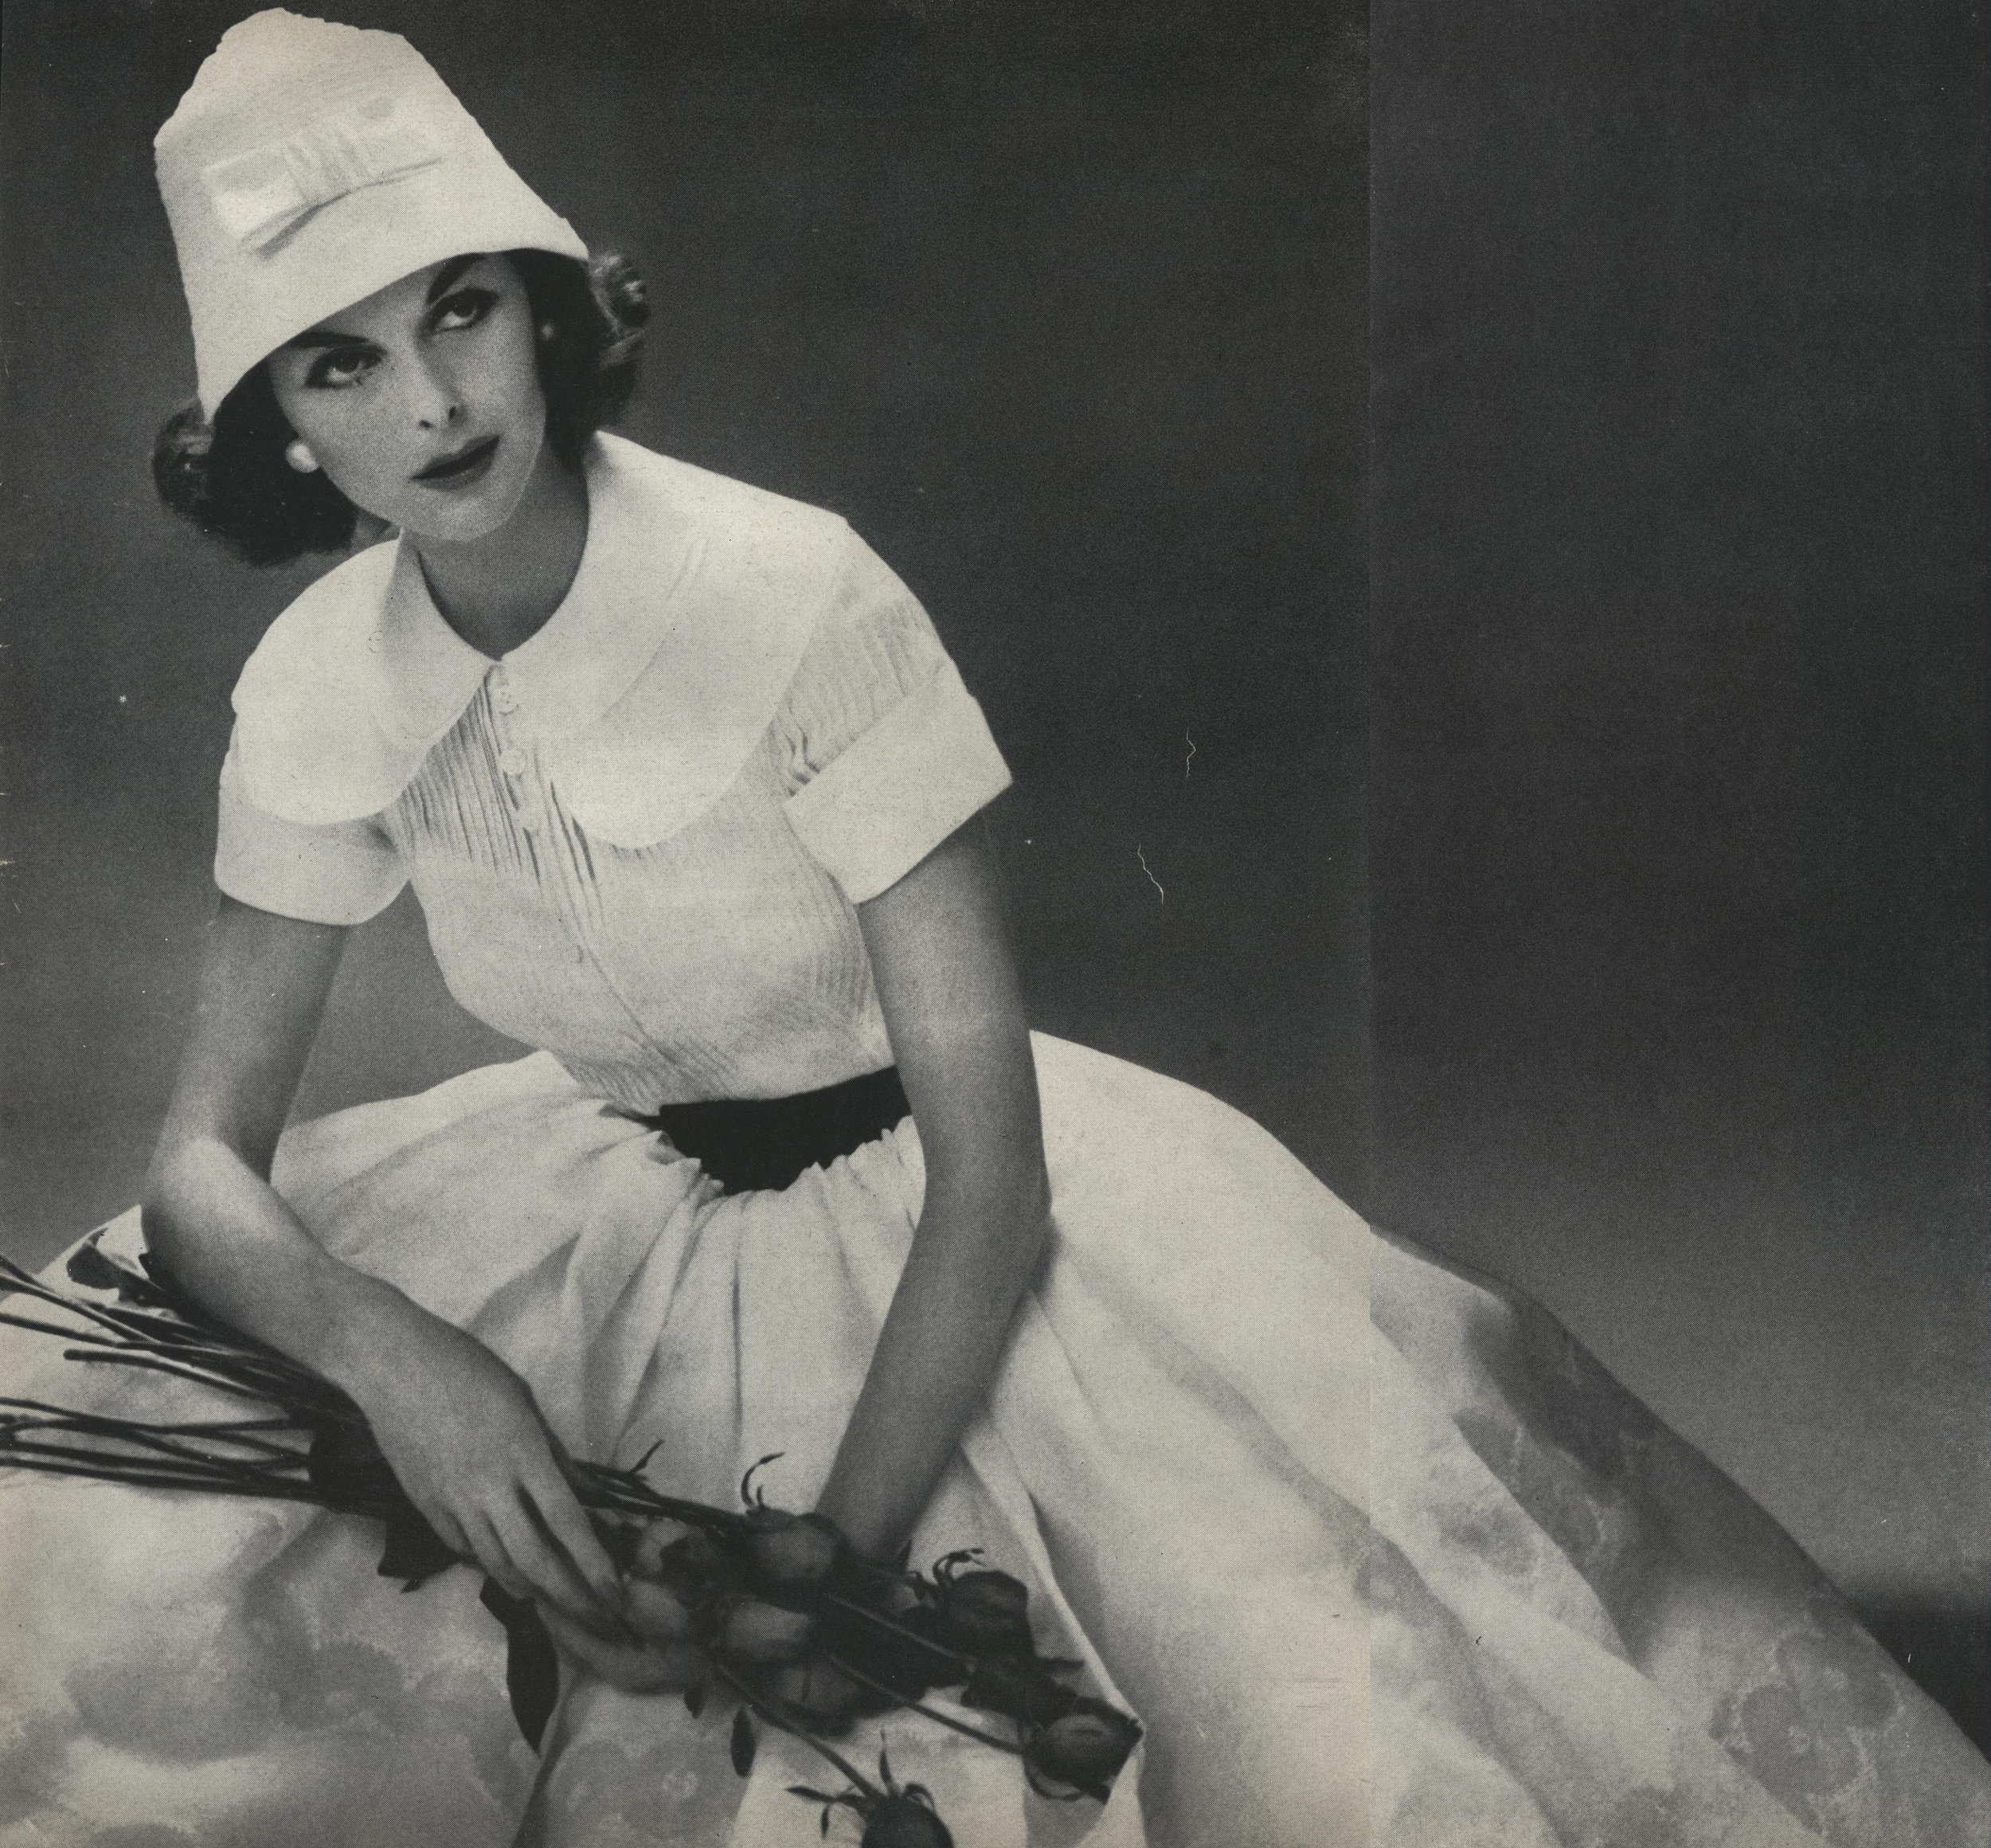 """Galanos was known for his love of stiff white organdie. Here used for a """"demi-long shirtwaist dress that might seen next as a country wedding, or at a dance in town."""" Photographed by Irving Penn for Vogue, June 1957."""